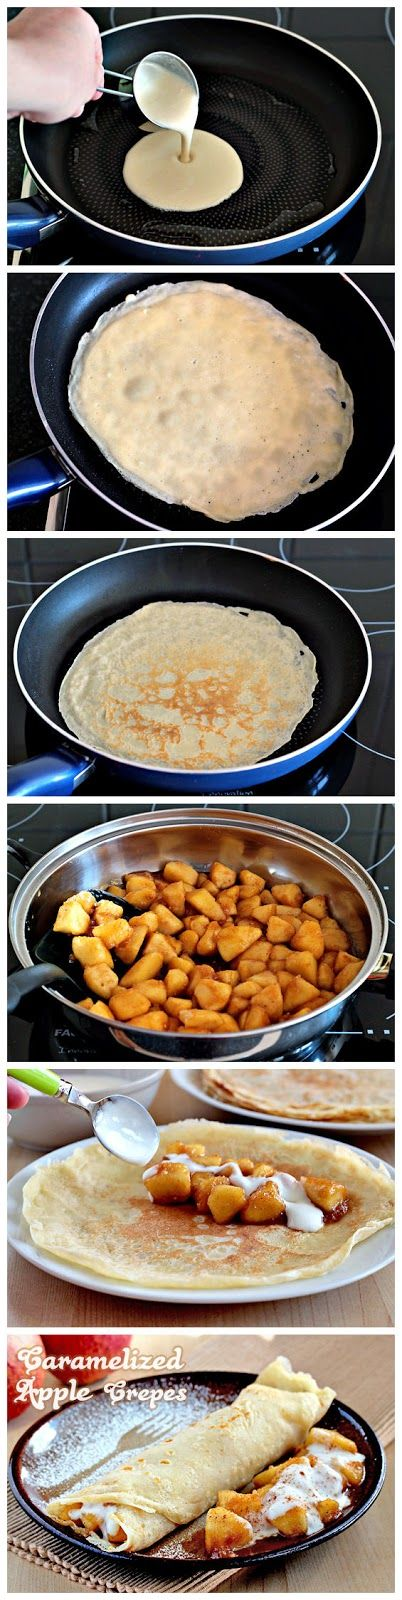 Caramelized Apple Crepes - yum.  Could also make caramelized banana crepes